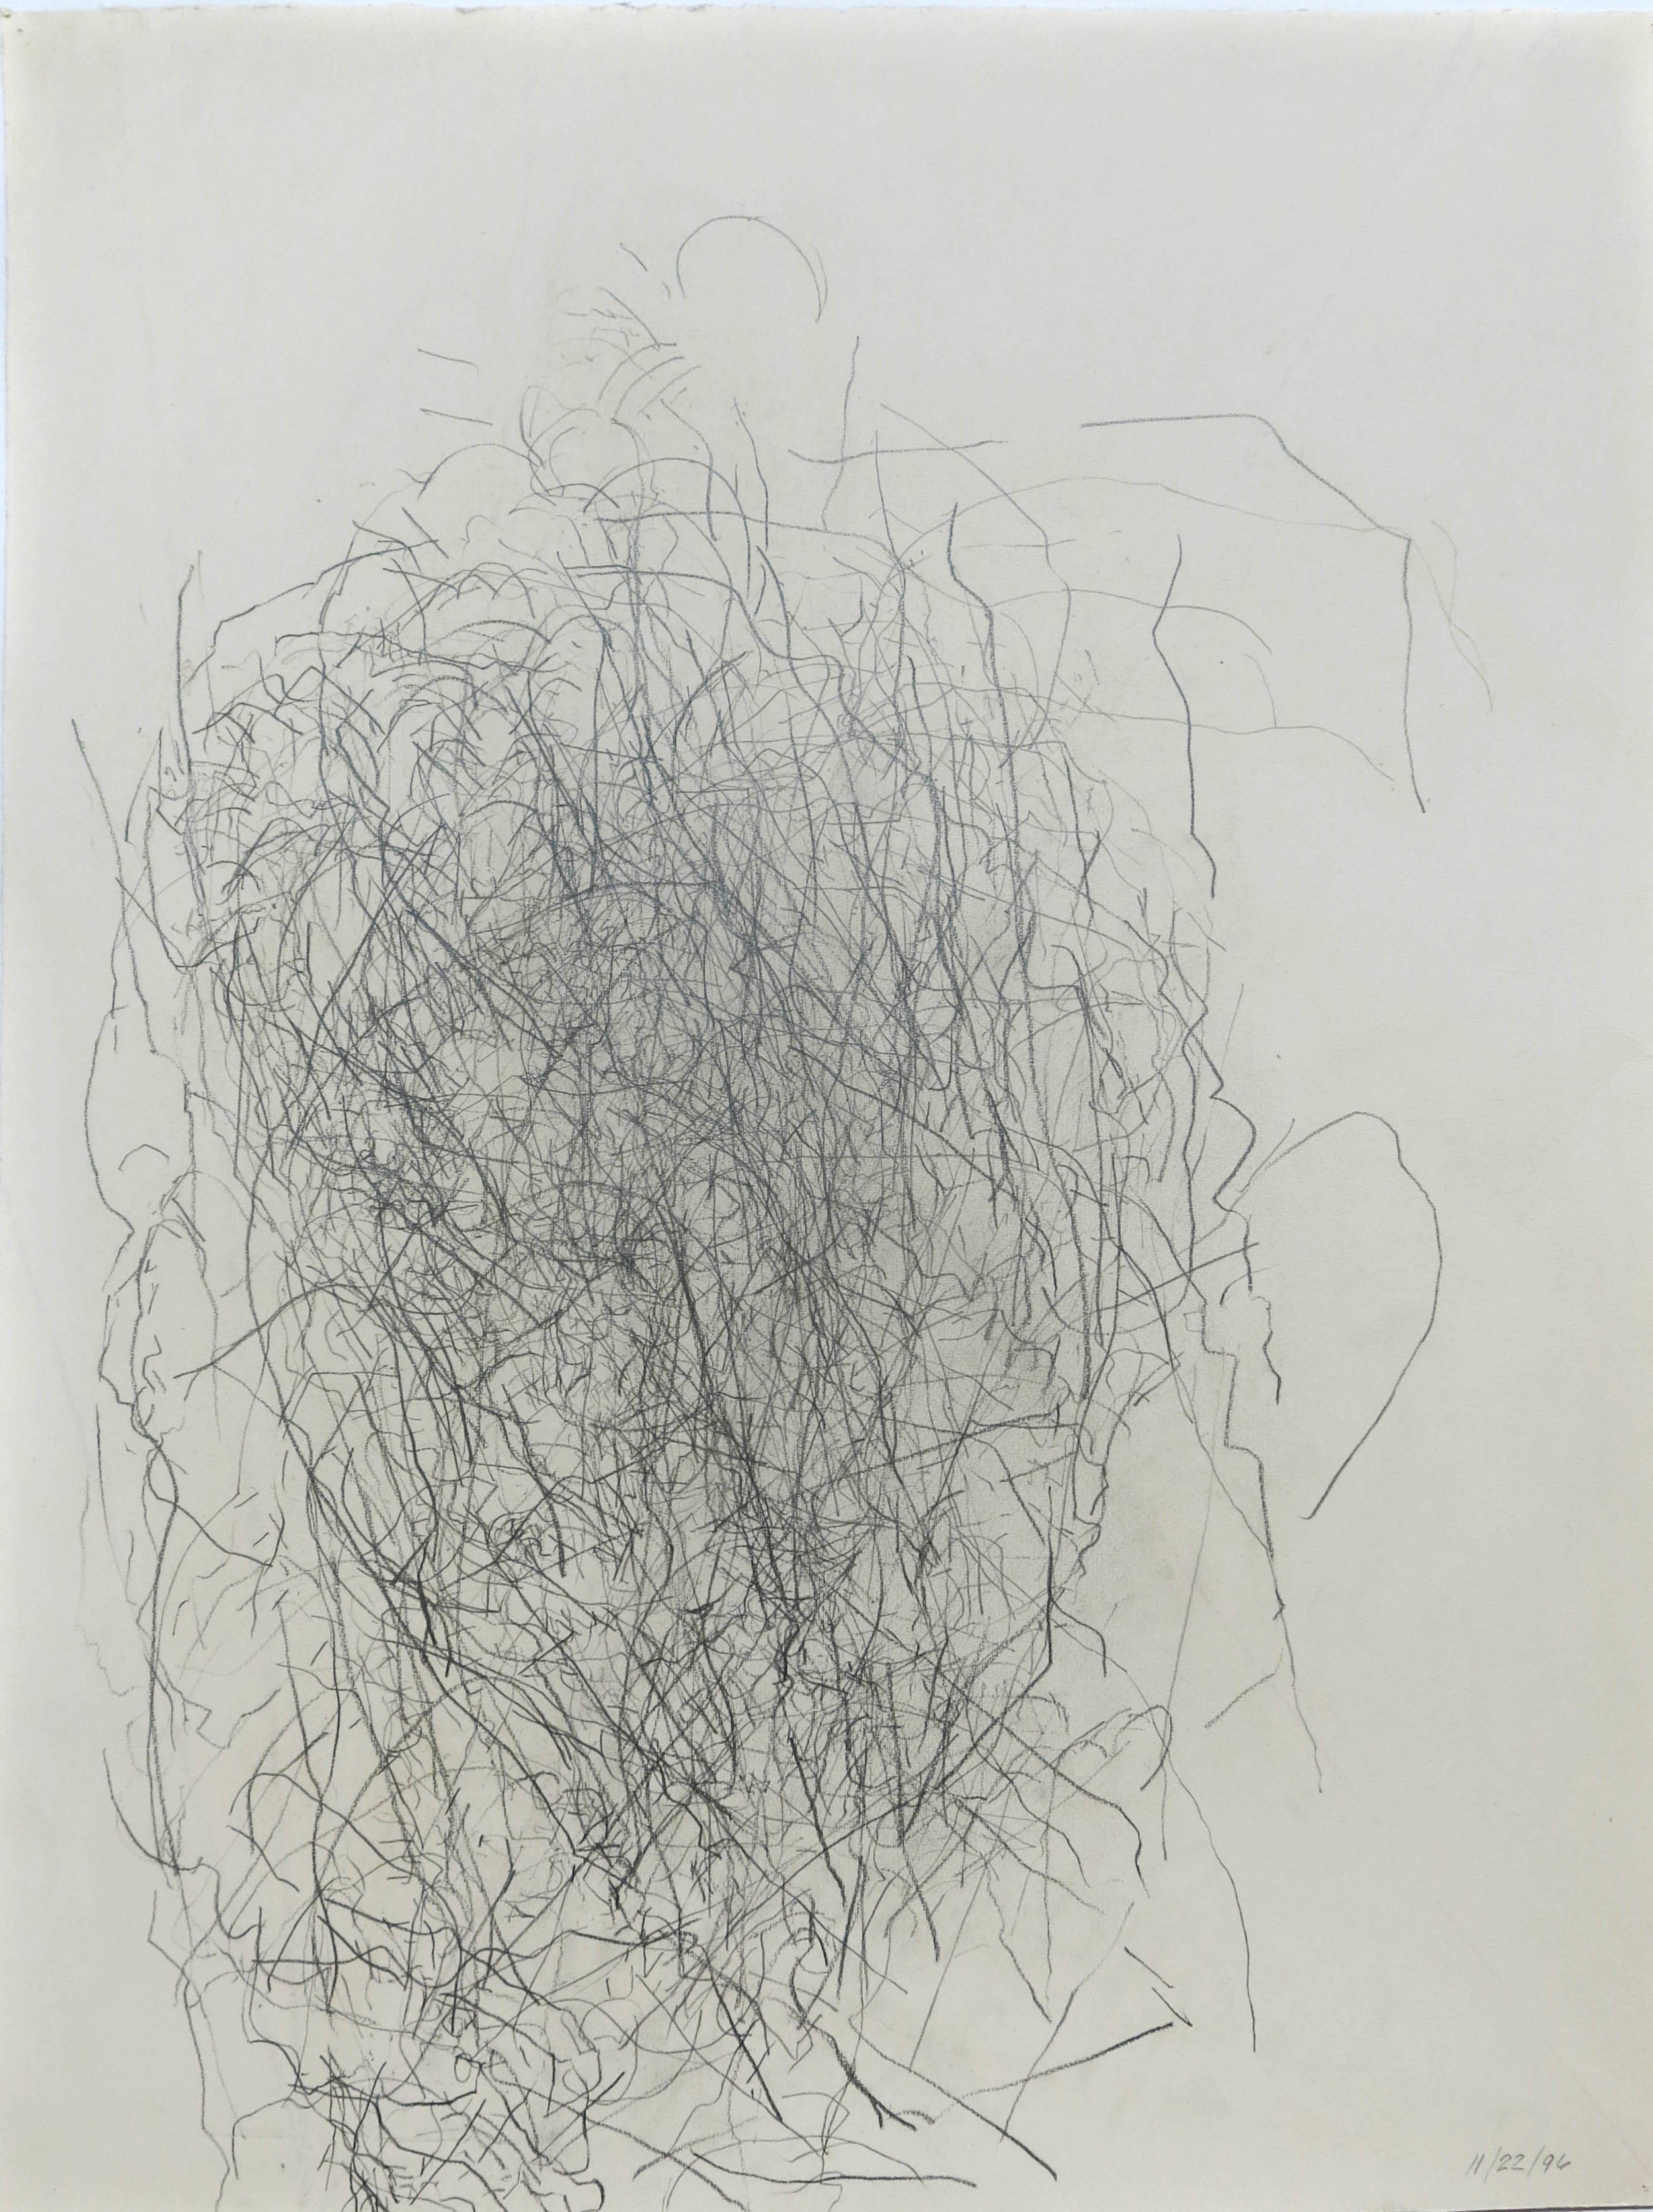 Edward Finnegan,  November 22, 1996 (Portraits series) , 1996, Graphite on paper, 30h x 22.5w in.